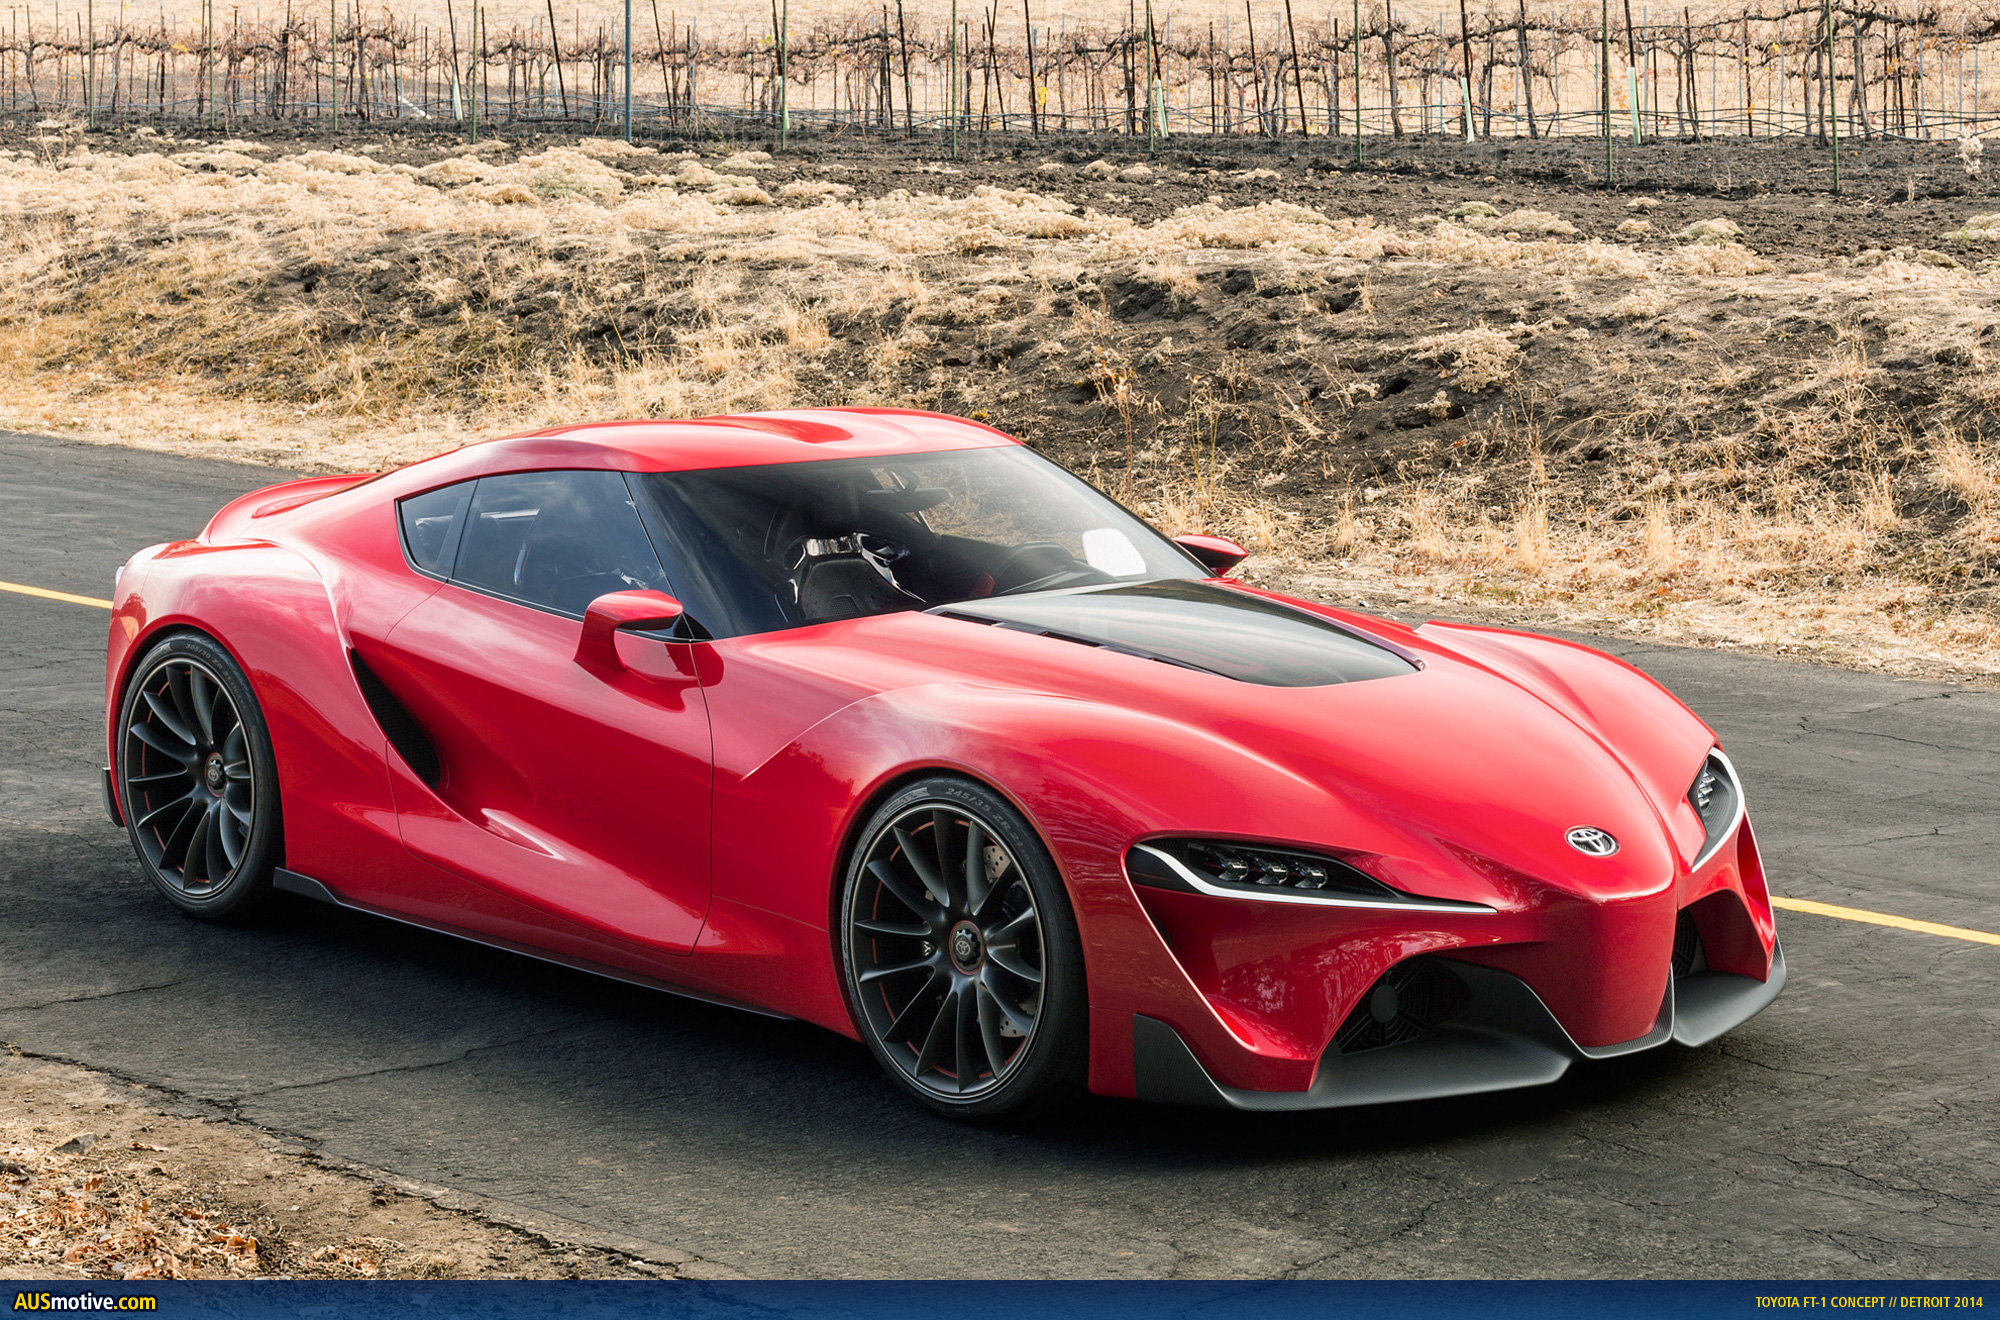 Toyota Ft 1 Engine >> AUSmotive.com » Detroit 2014: Toyota FT-1 concept